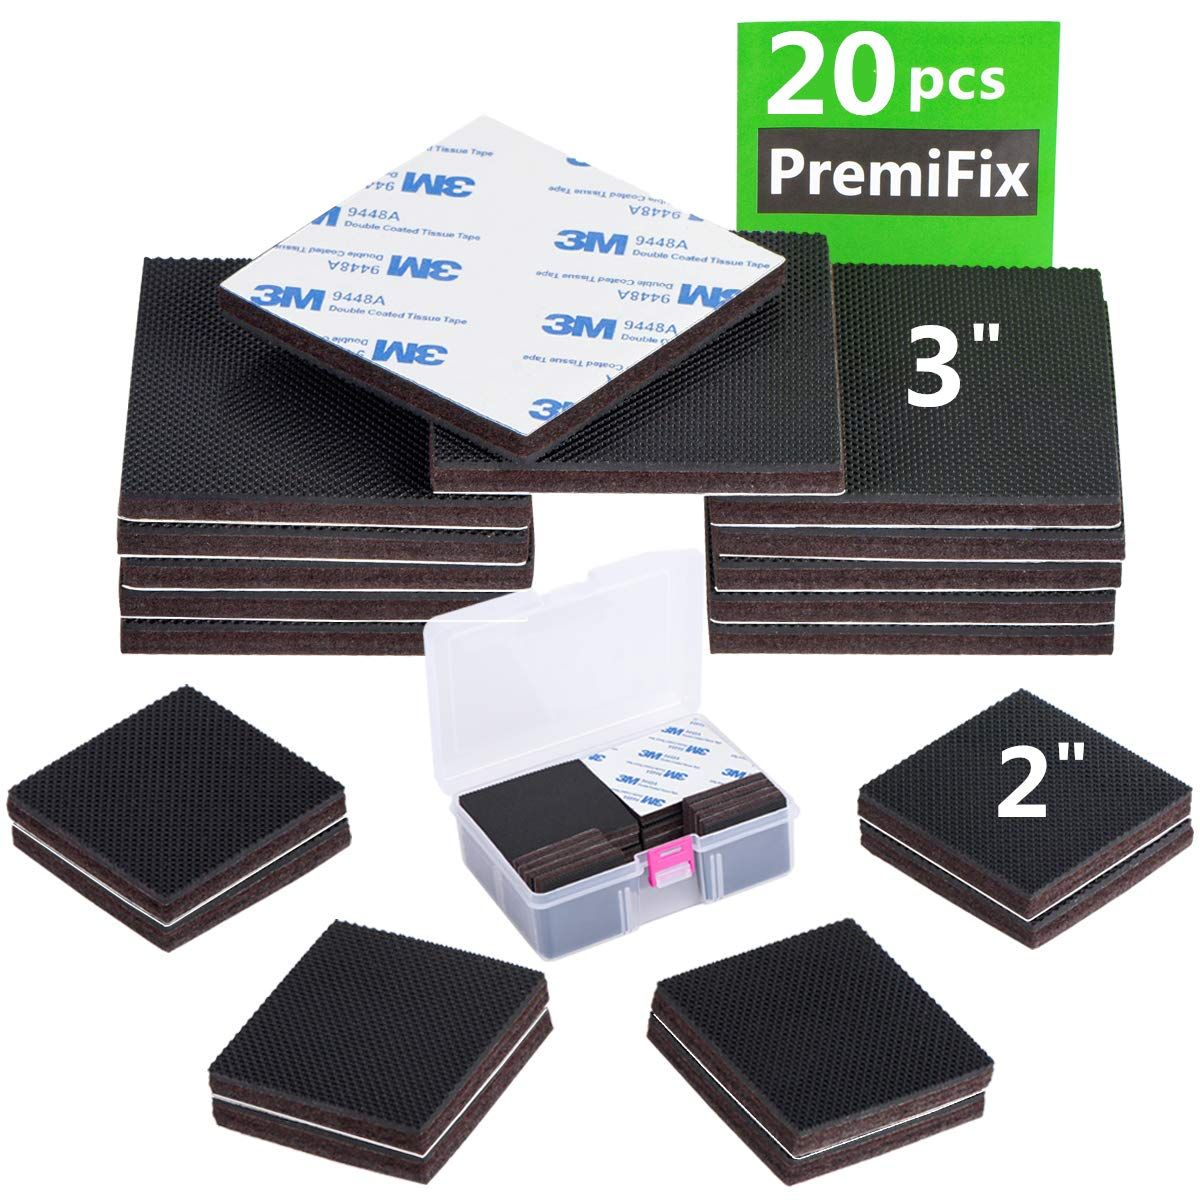 Non Slip Furniture Rubber Pads 20 Pieces 3 2 Inch Square Anti Slip Furniture Pads Hardwood Sofa Bed S Furniture Pads Felt Furniture Pads Furniture Protectors